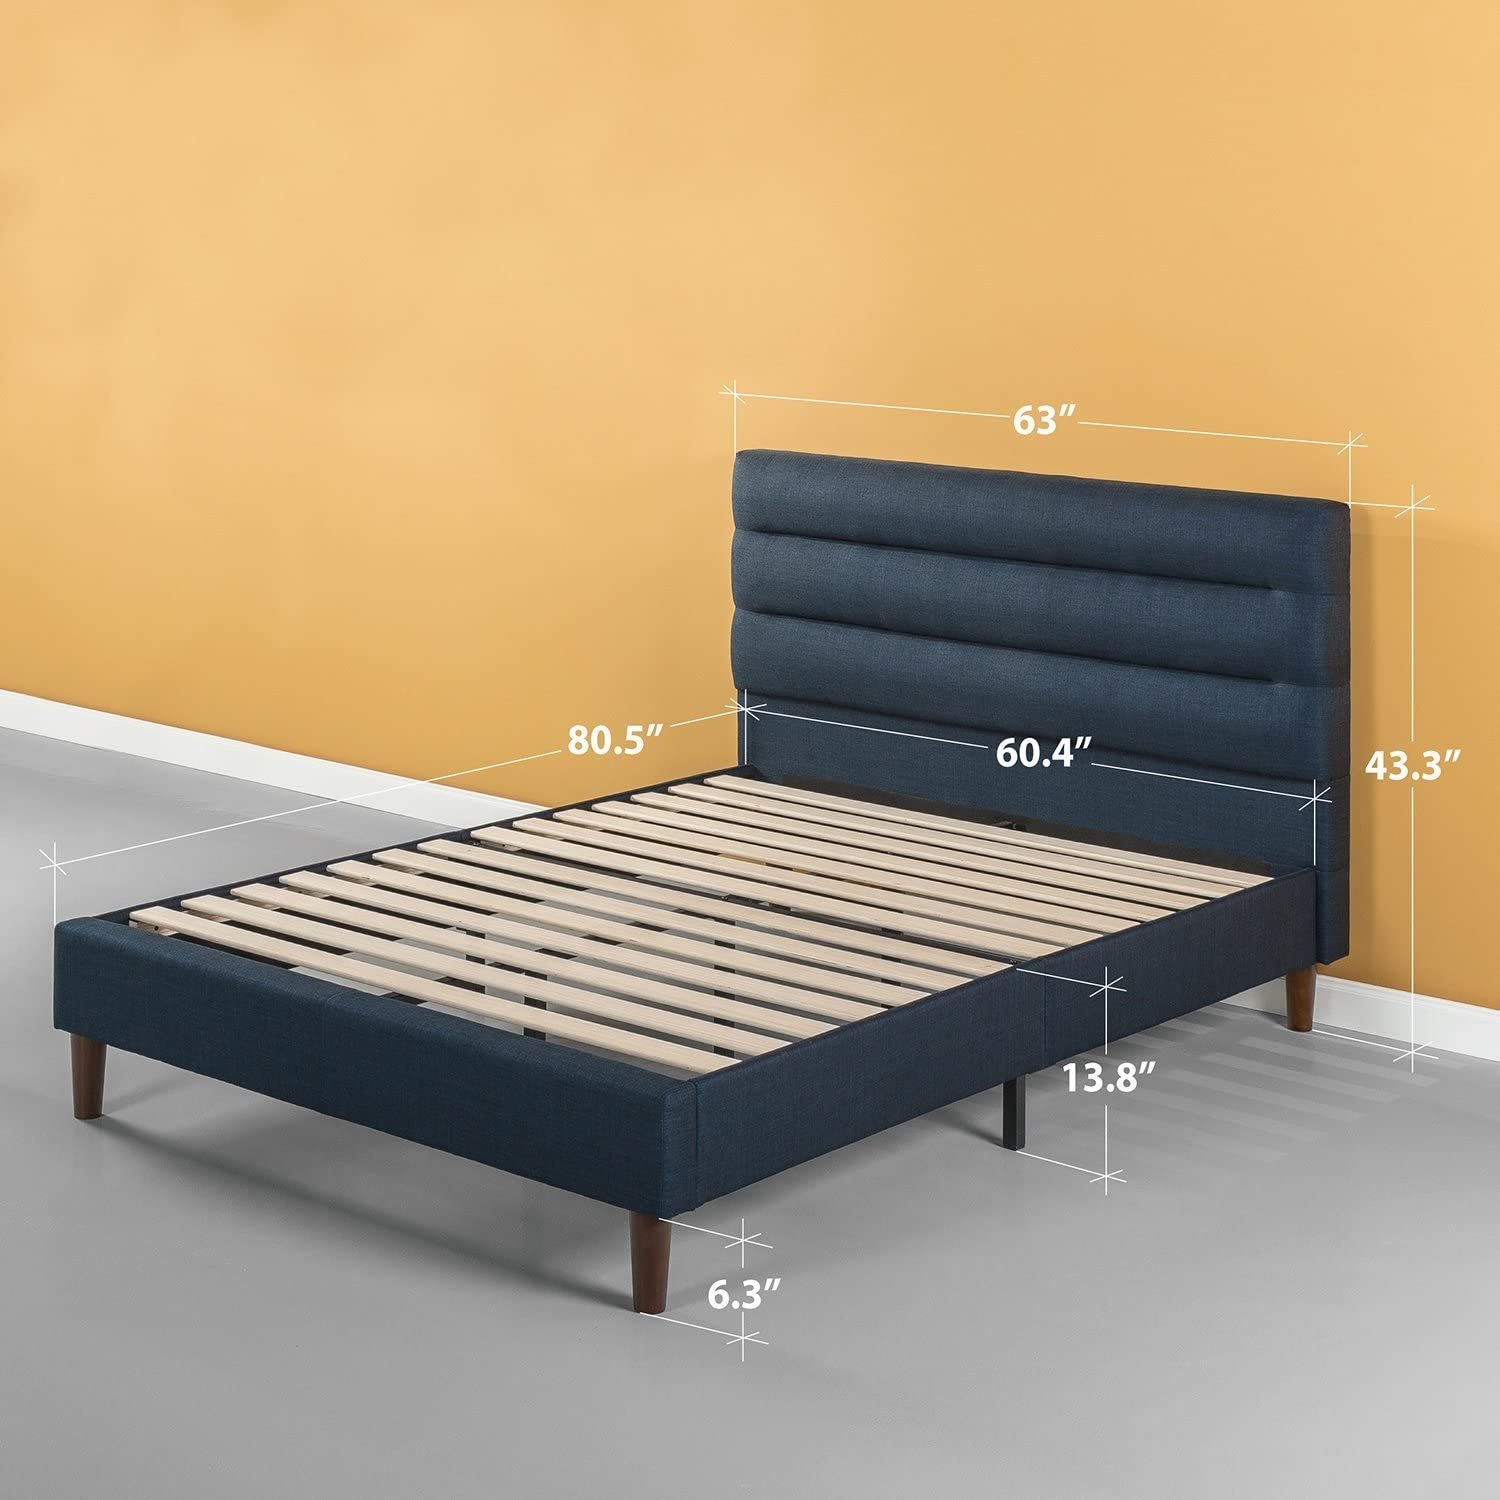 King Strong Wood Slat Support in Navy Zinus Upholstered Horizontally Cushioned Platform Bed